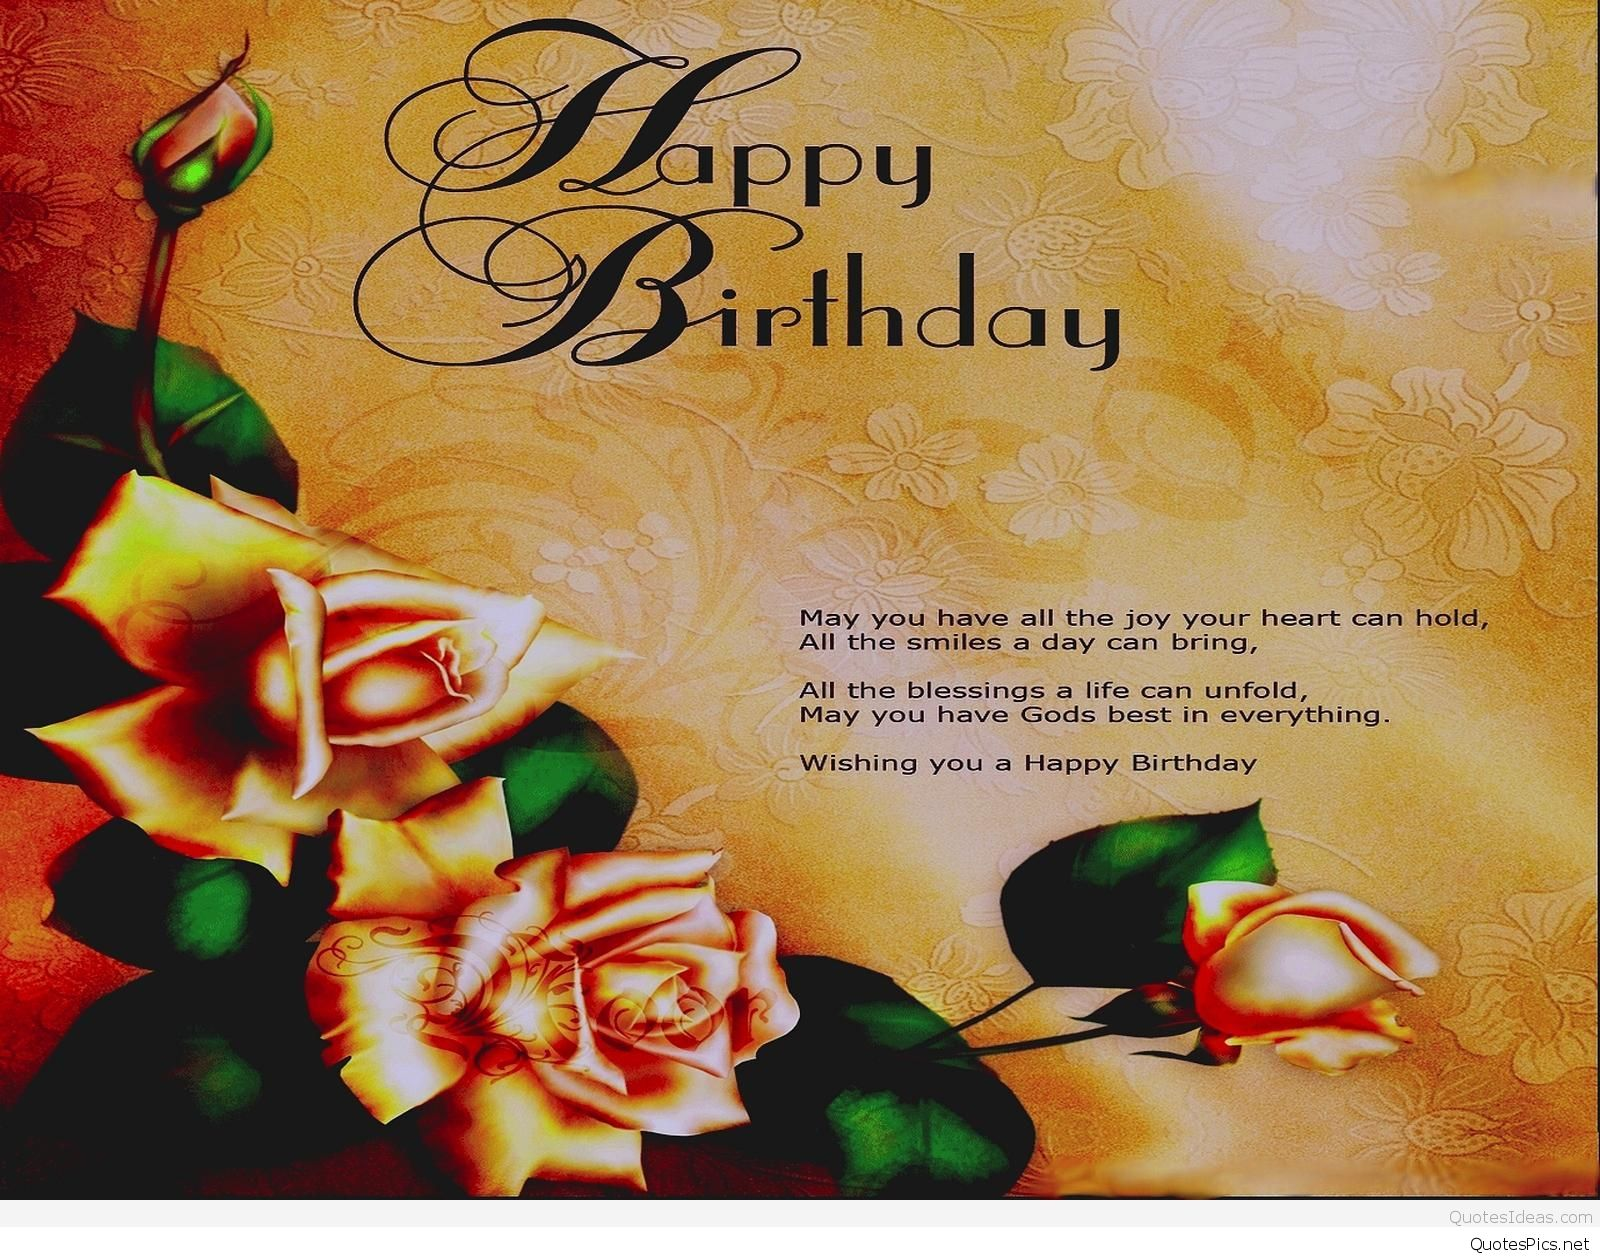 birthday wallpaper quotes ; happy-birthday-quotes-for-friends-cute-hd-wallpapers